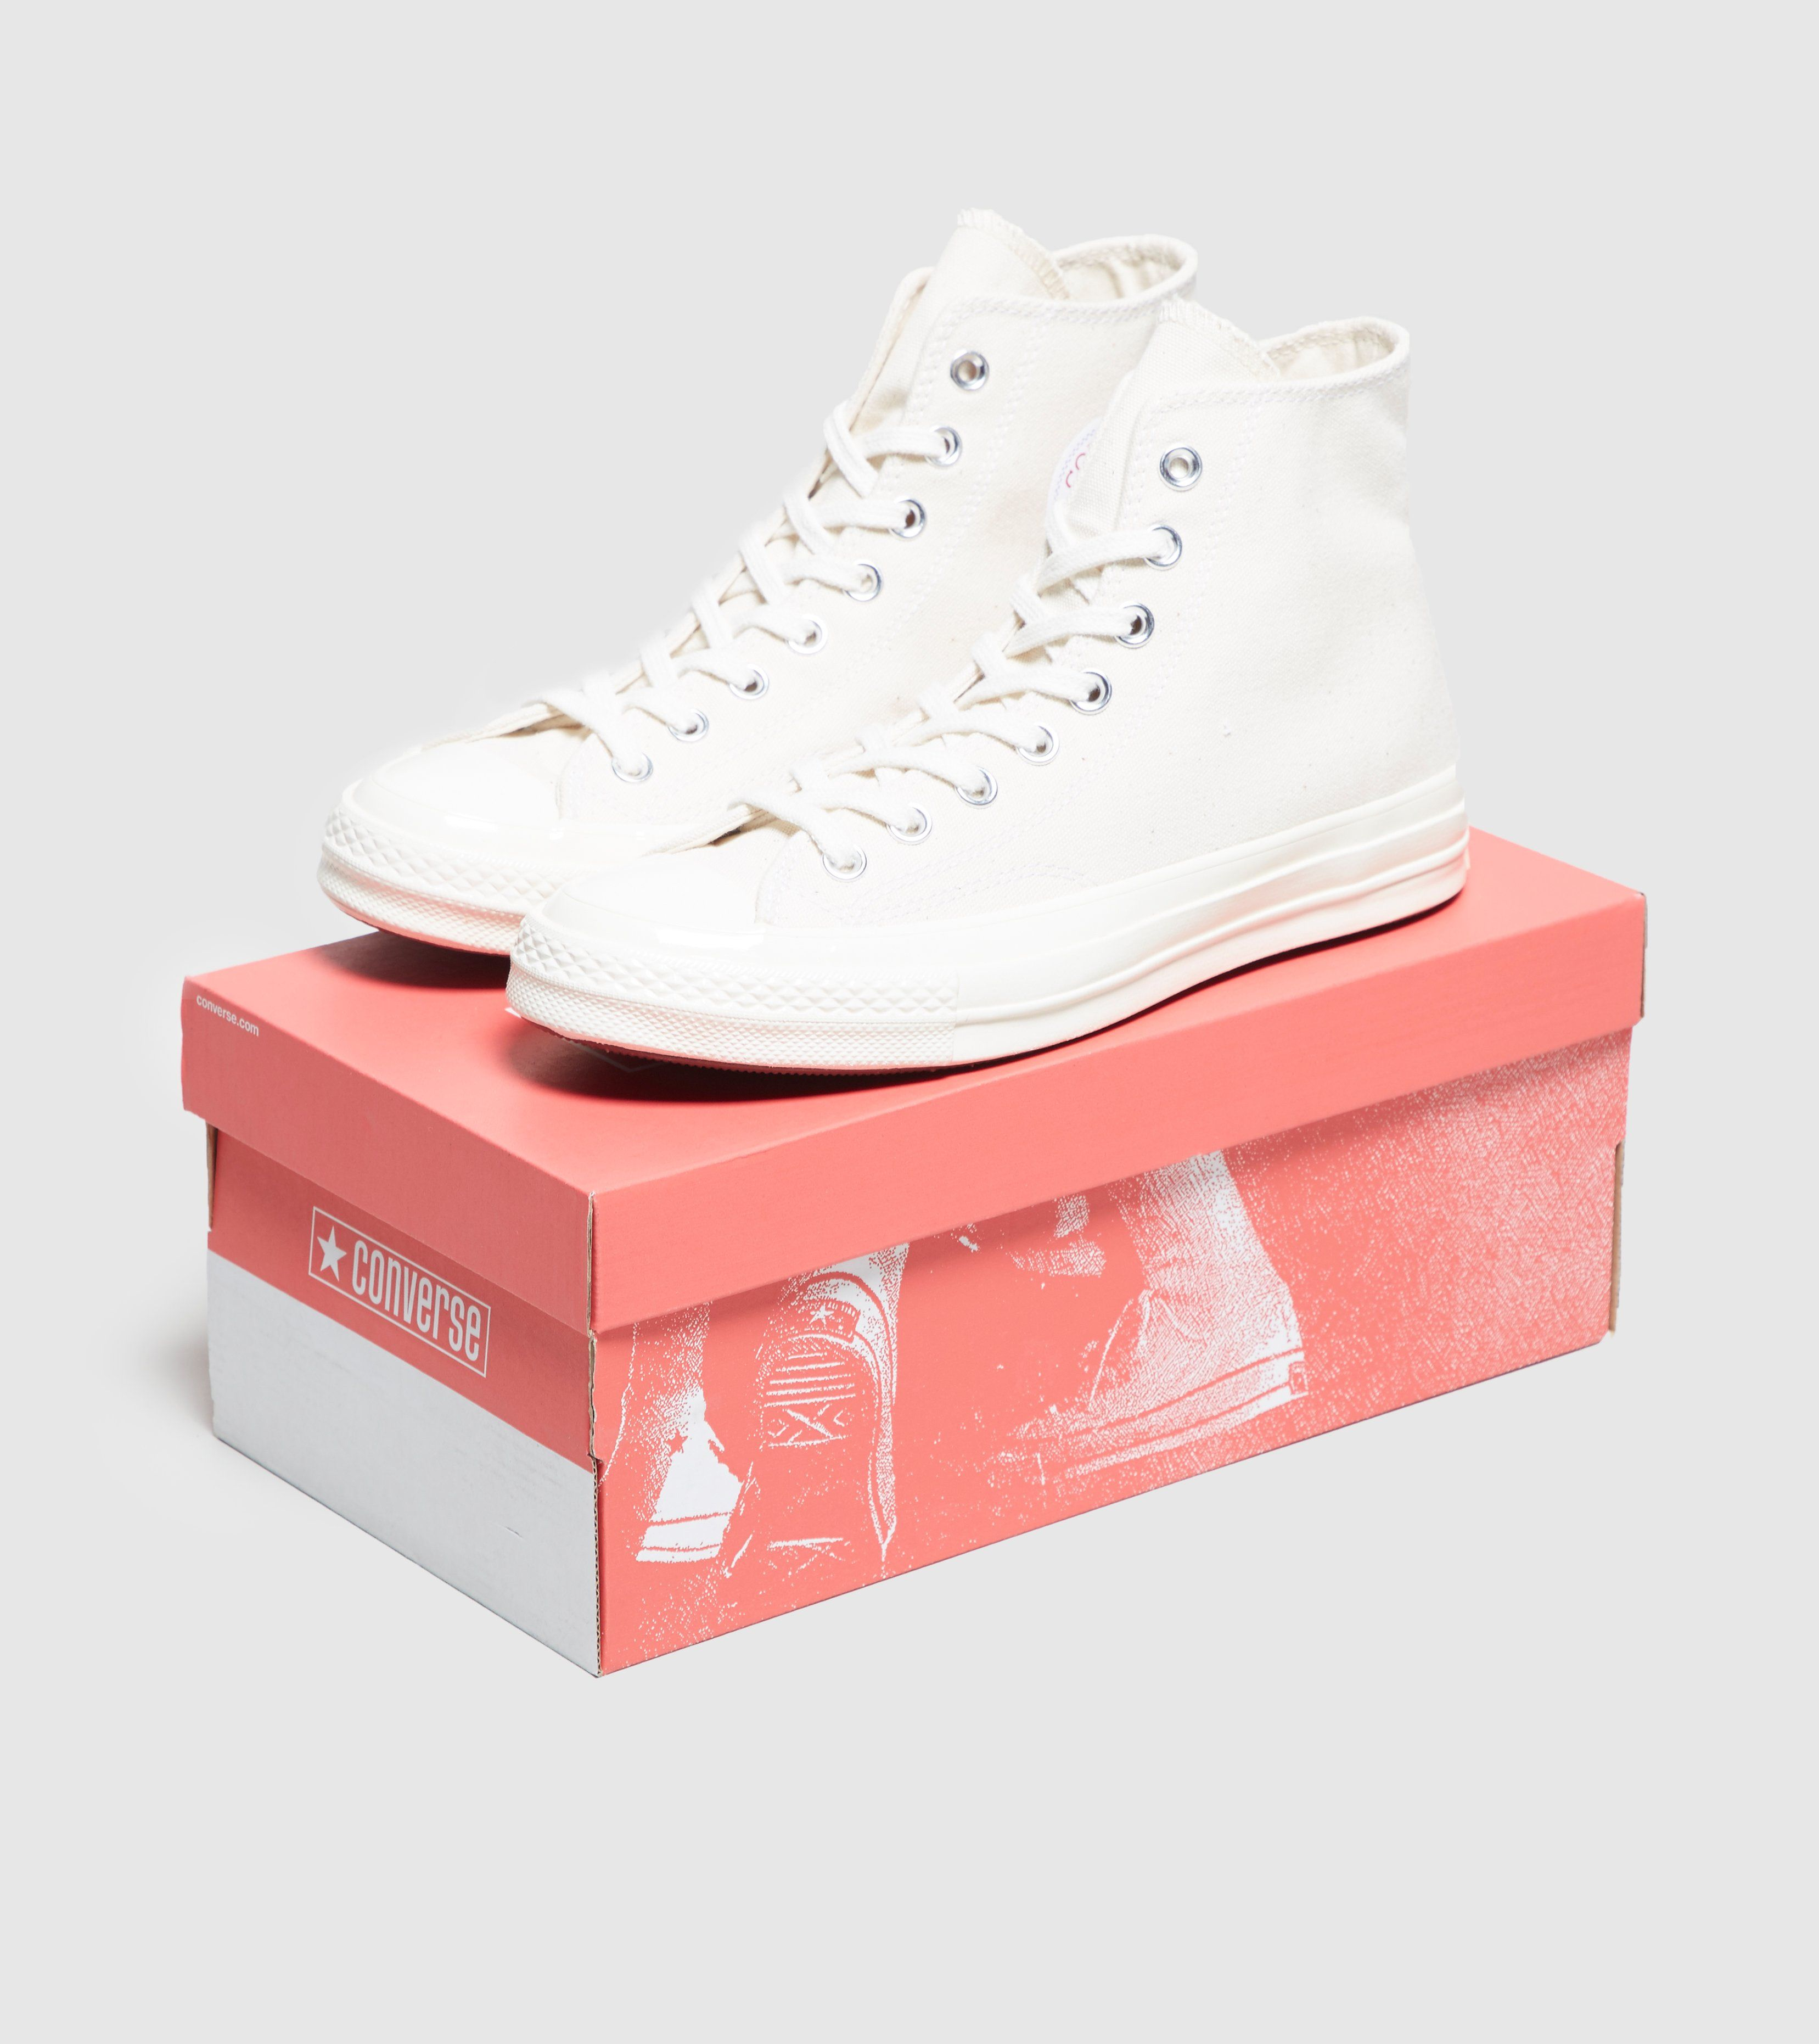 Converse Chuck Taylor All Star 70's High